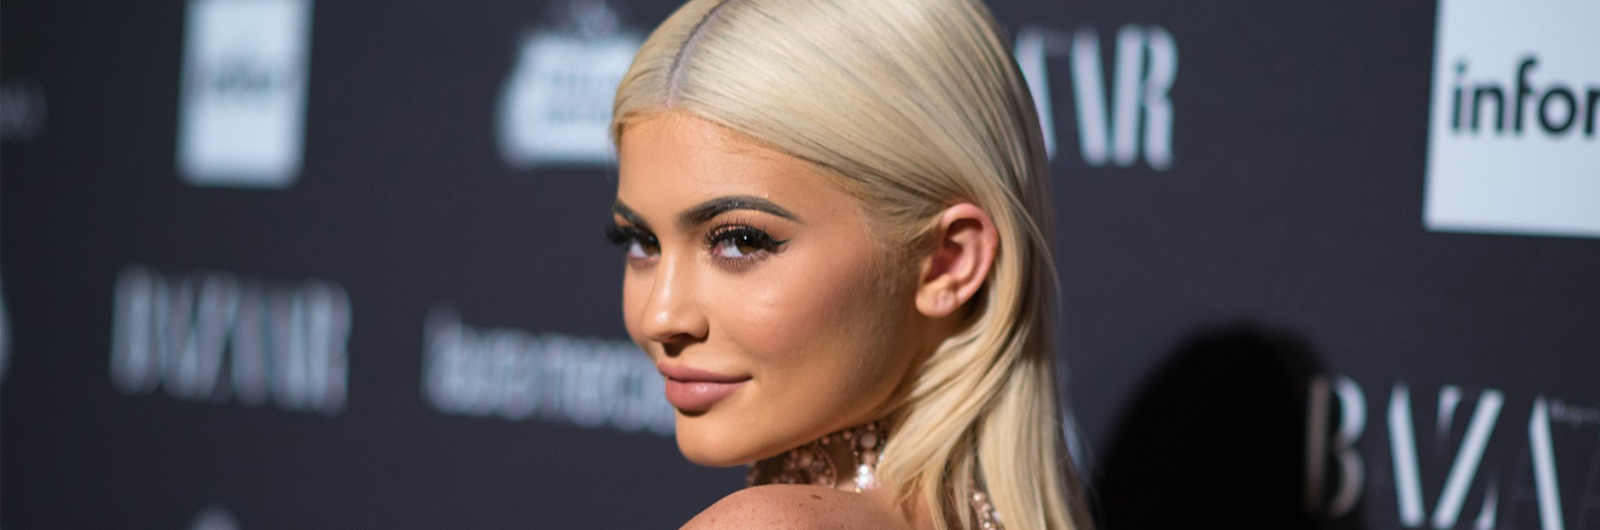 Kylie Jenner's Picture of Her New Baby Is the Most-Liked Photo on Instagram Ever